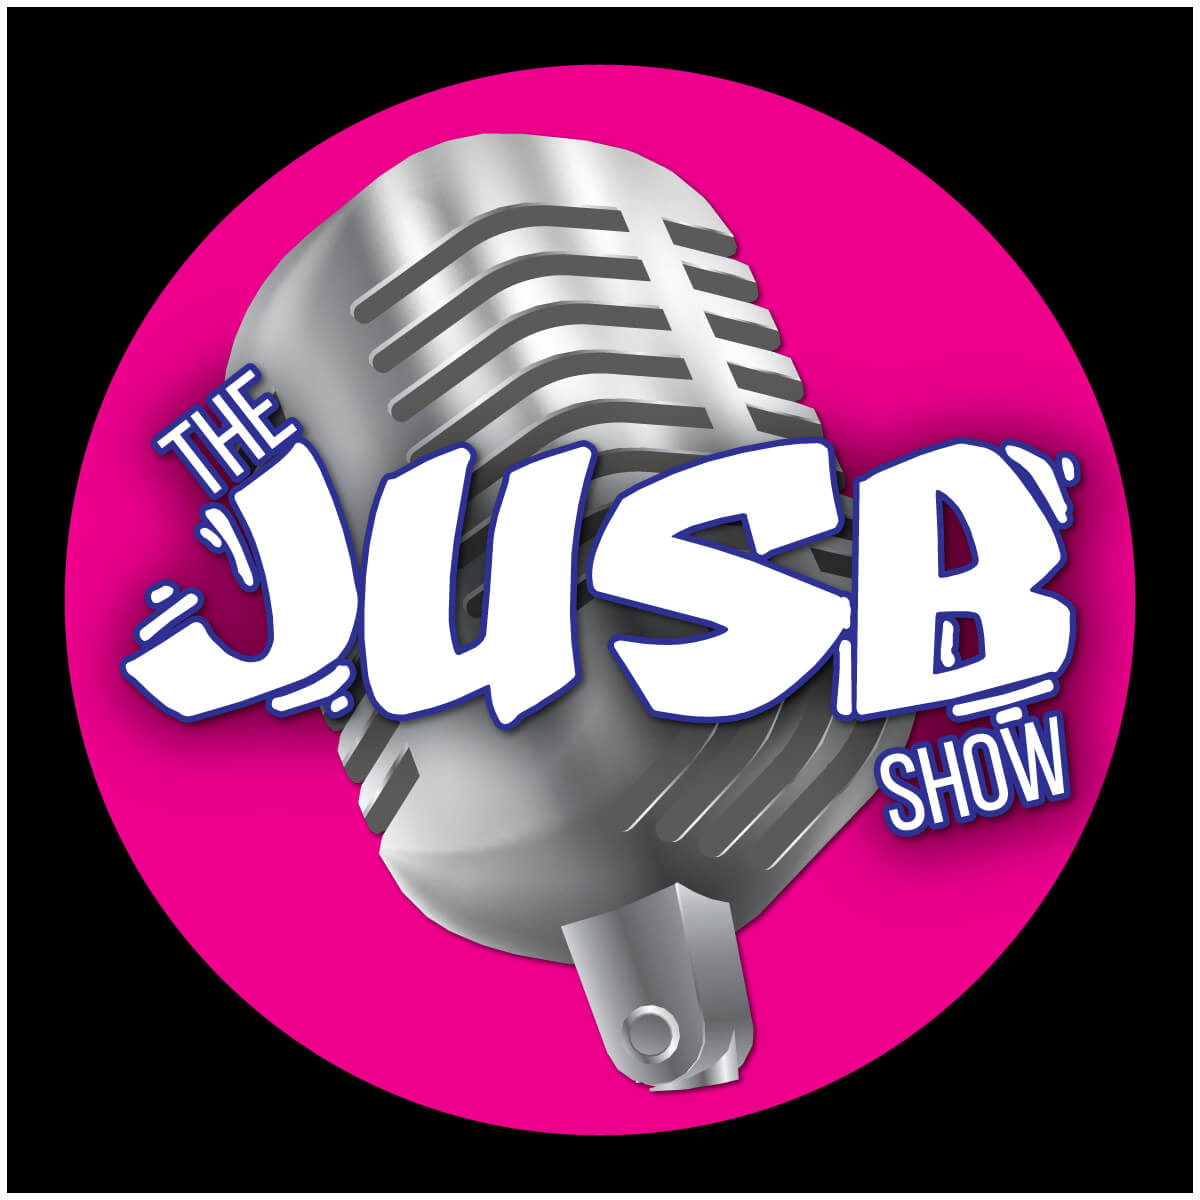 JusB Podcast Logo